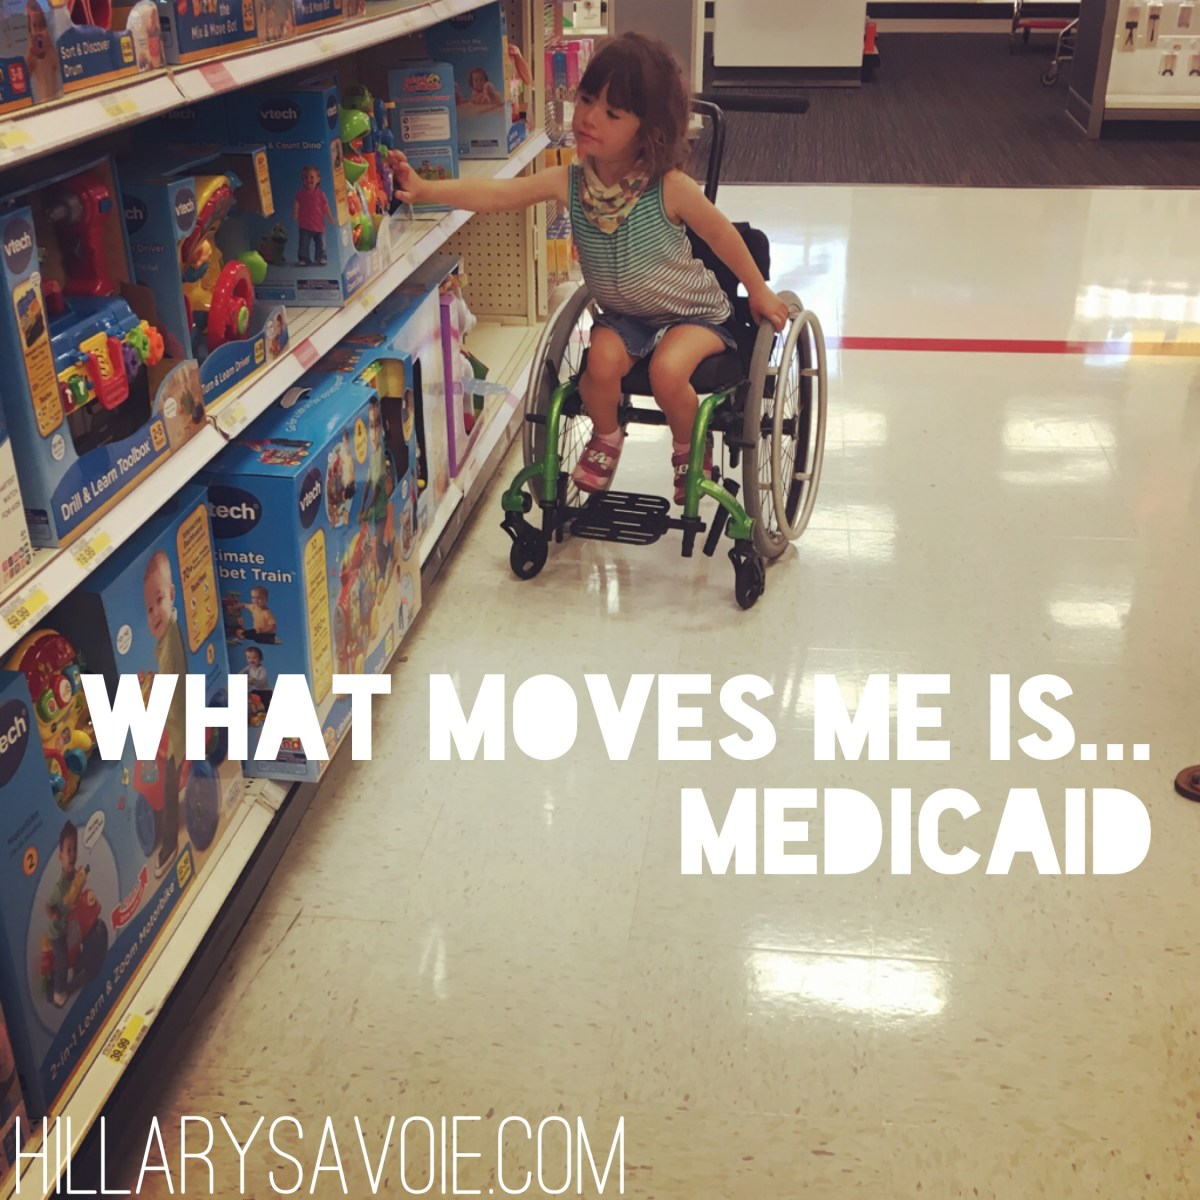 What moves me is…Medicaid.